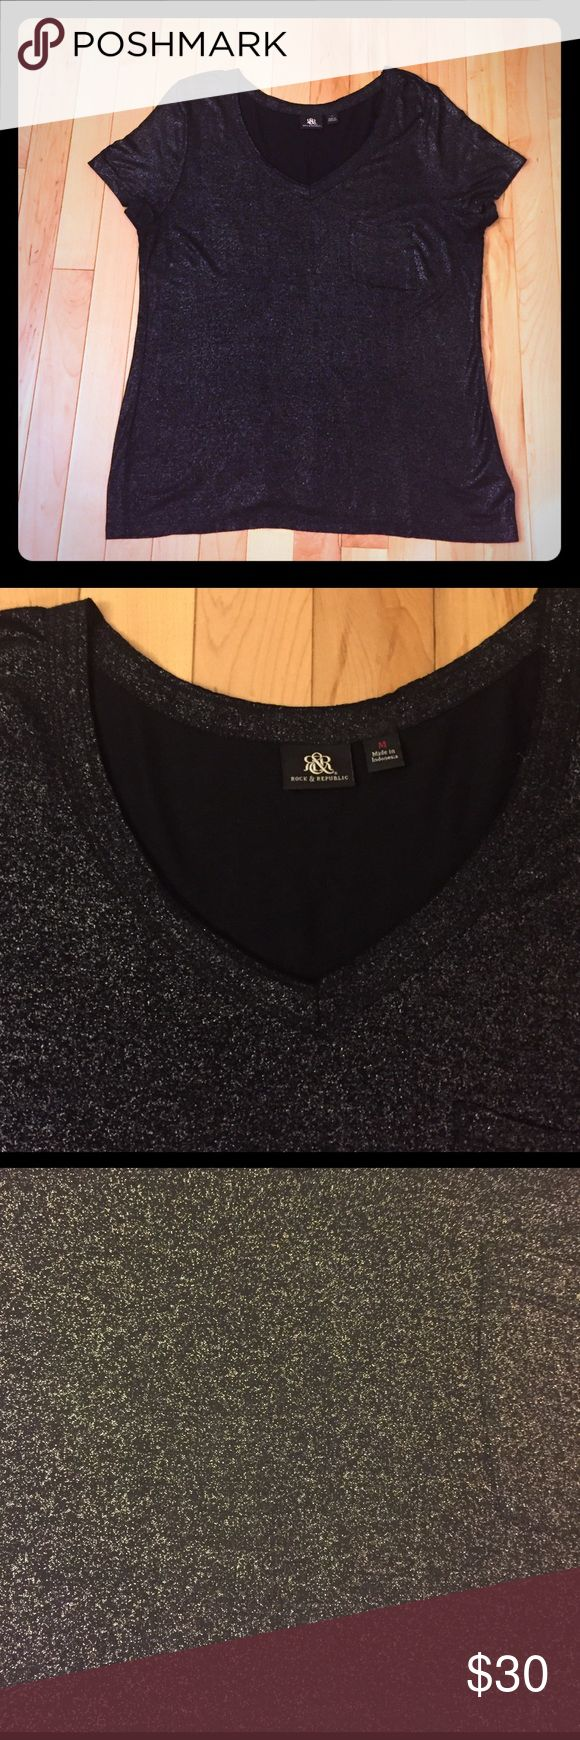 Rock & Republic Top Size M This Rock & Republic black and silver short sleeve top size M is in like new condition. No stains, rips or odors! A great top to dress up or down. Rock & Republic Tops Tees - Short Sleeve